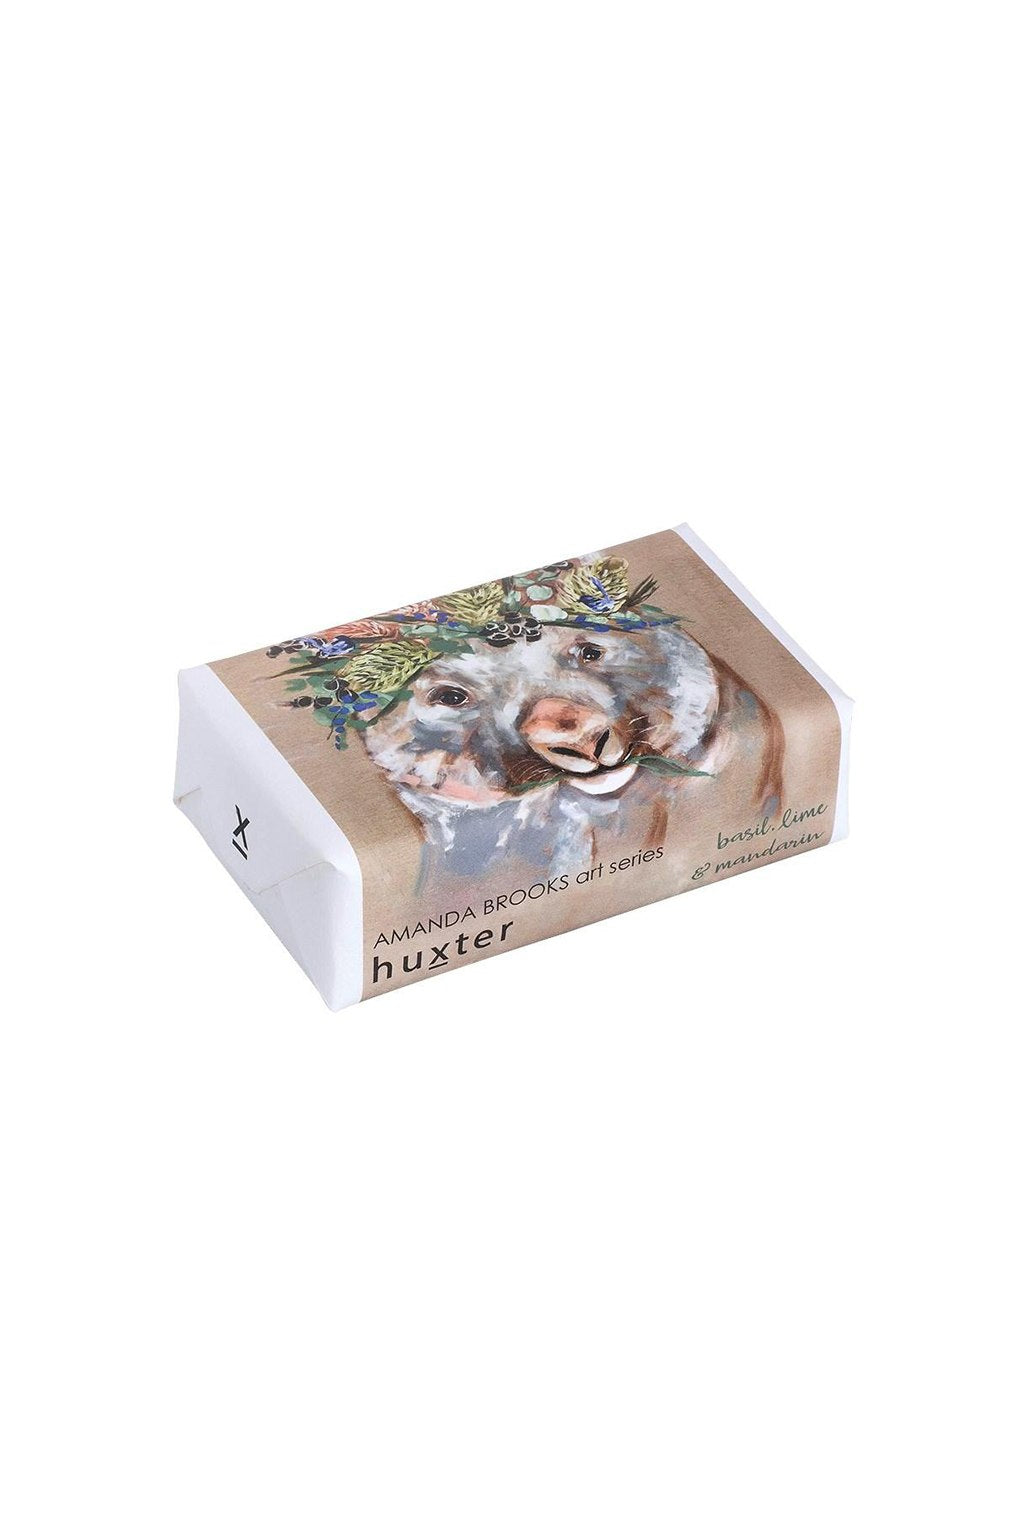 Huxter-Huxter Soap - Forget Me Not Wombat-Mott and Mulberry